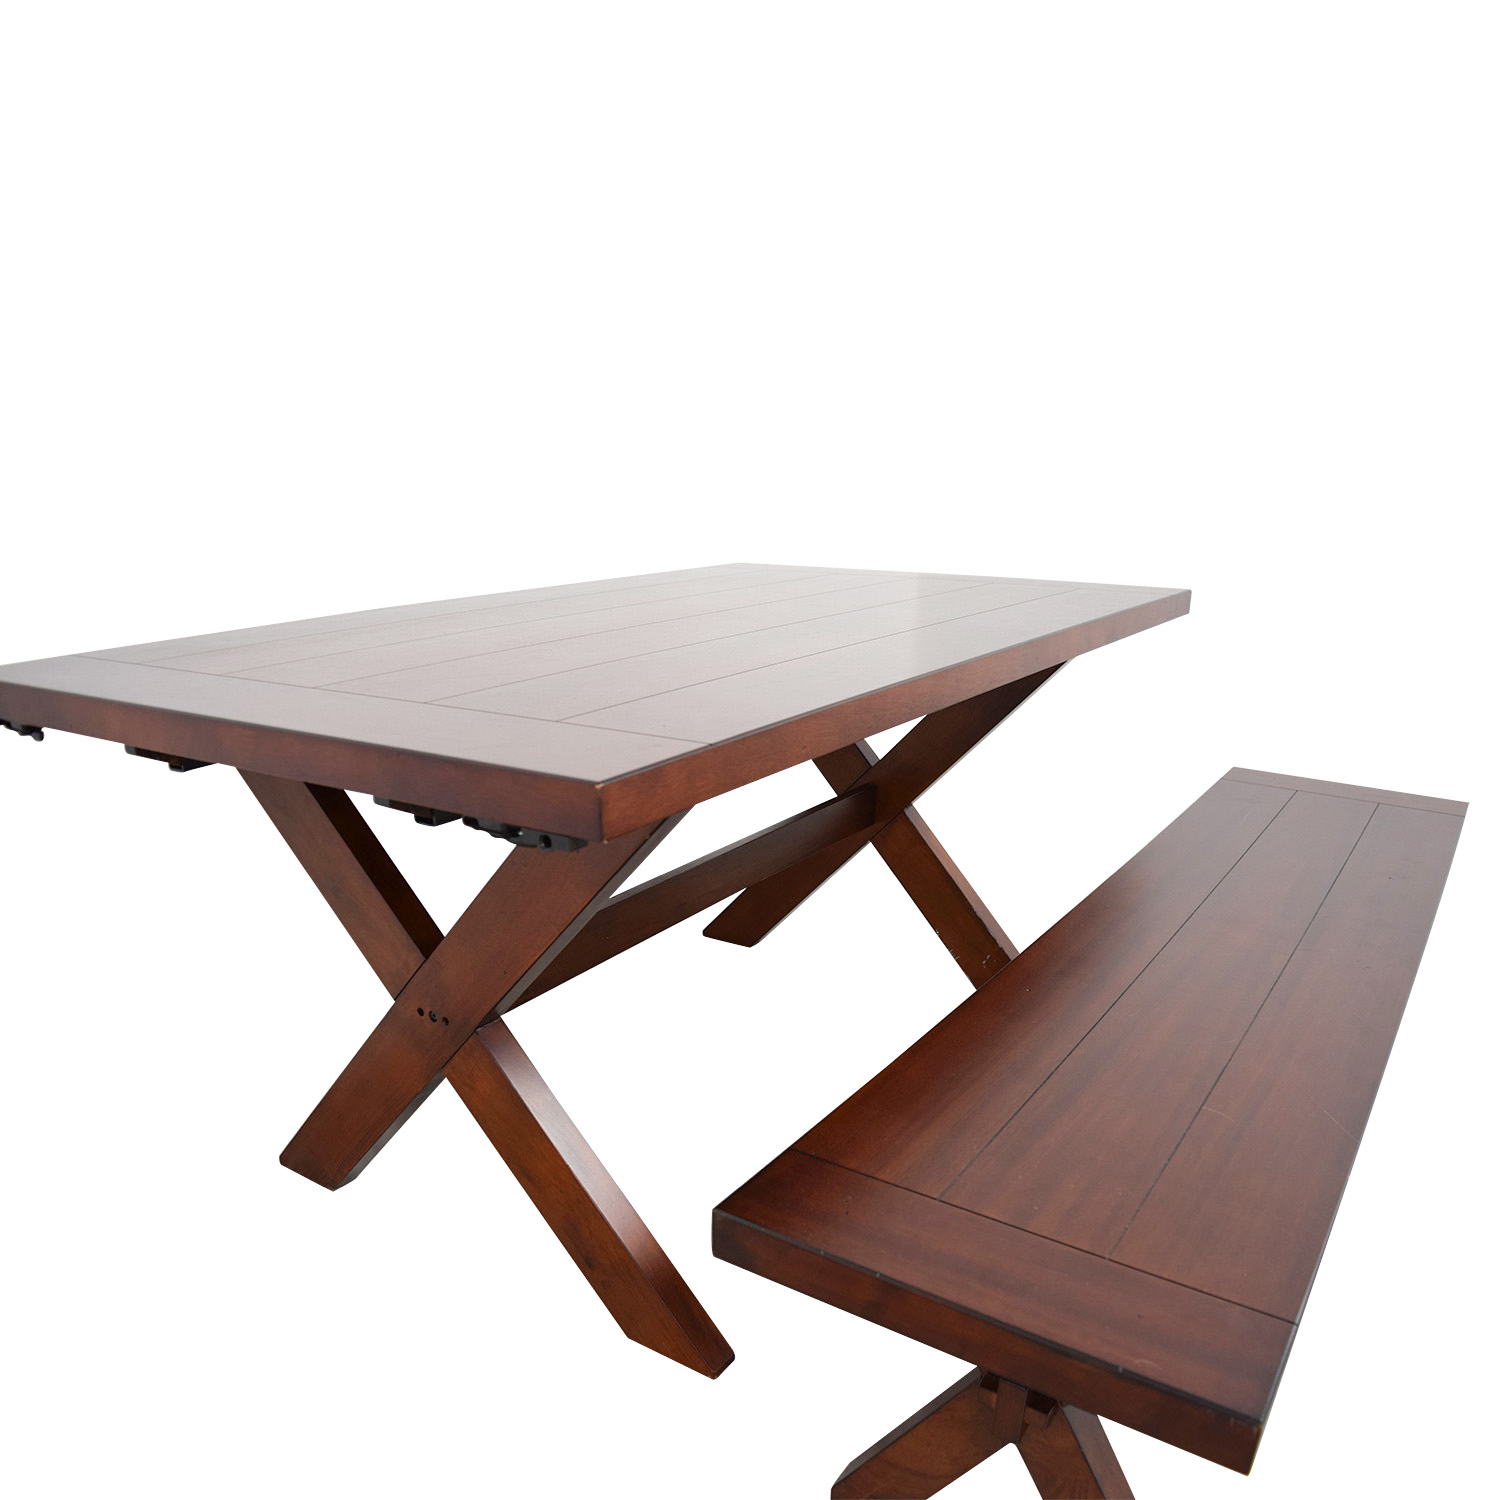 Pier 1 Imports Dining Table: Pier 1 Imports Pier 1 Imports Nolan Wood Dining